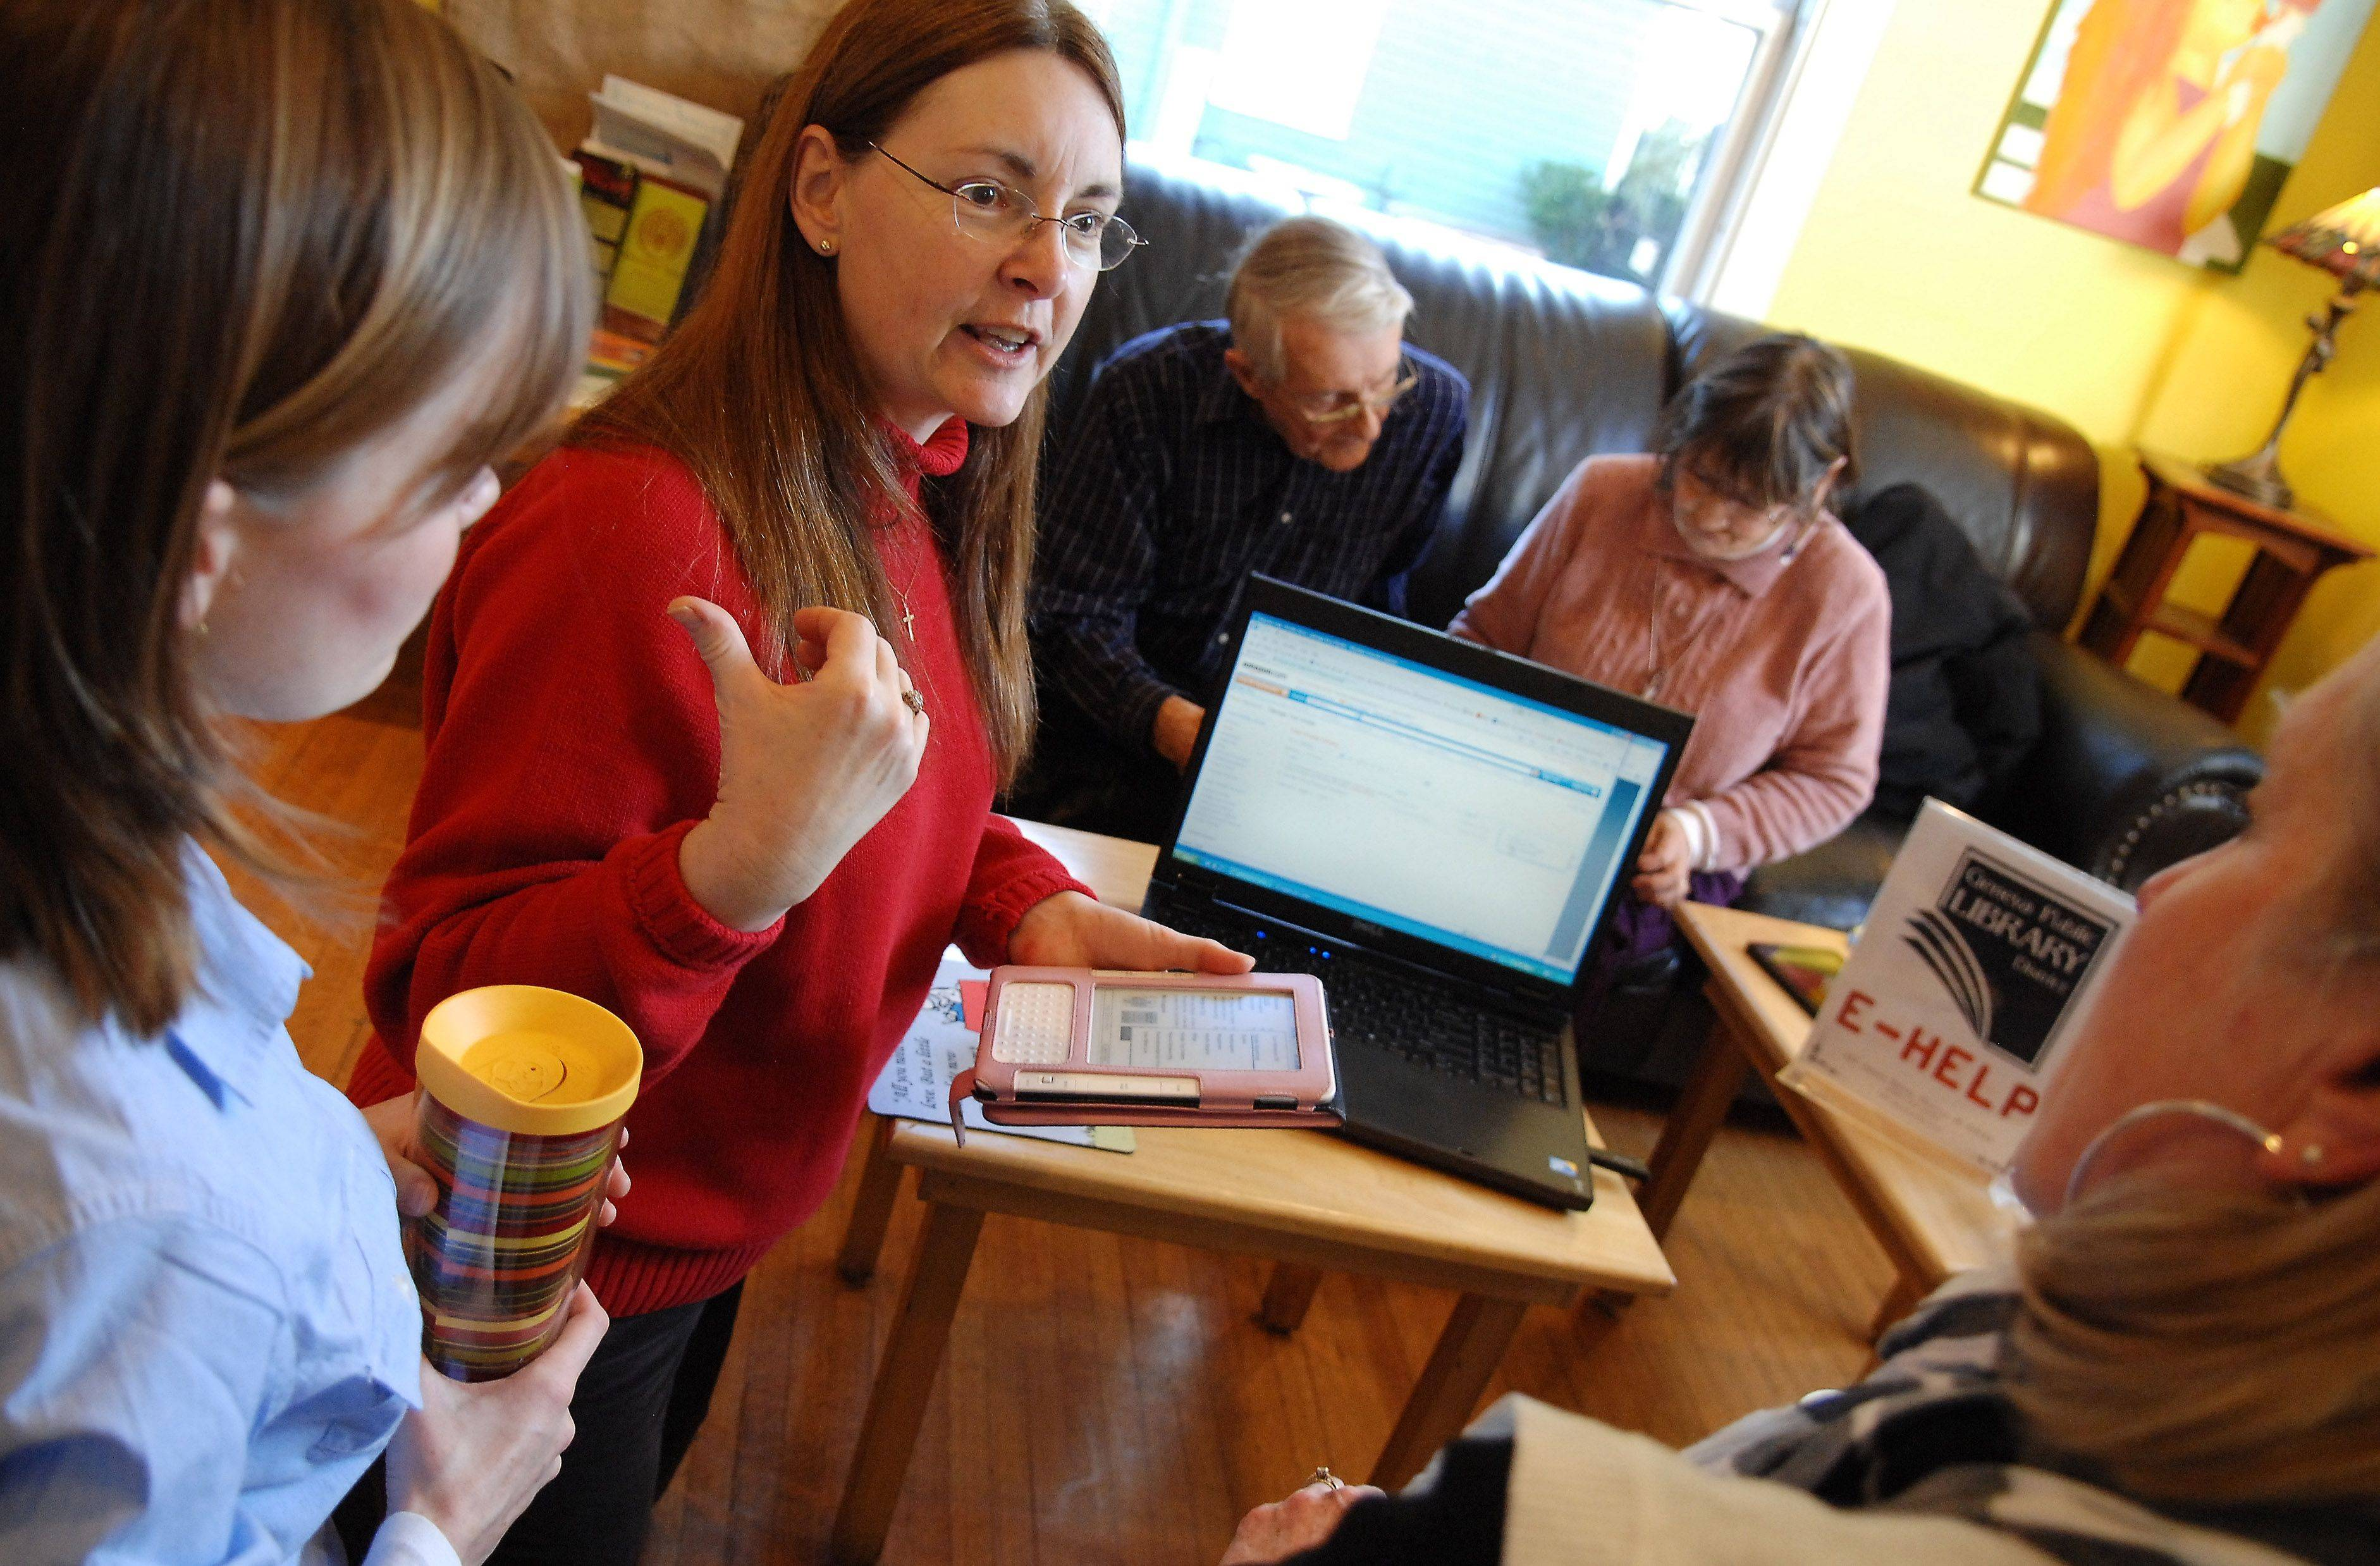 Geneva Library reference assistant Christine Dalphy helps a group learn how to use their various e-readers to check out books from the library Monday afternoon at Graham's 318 in Geneva.